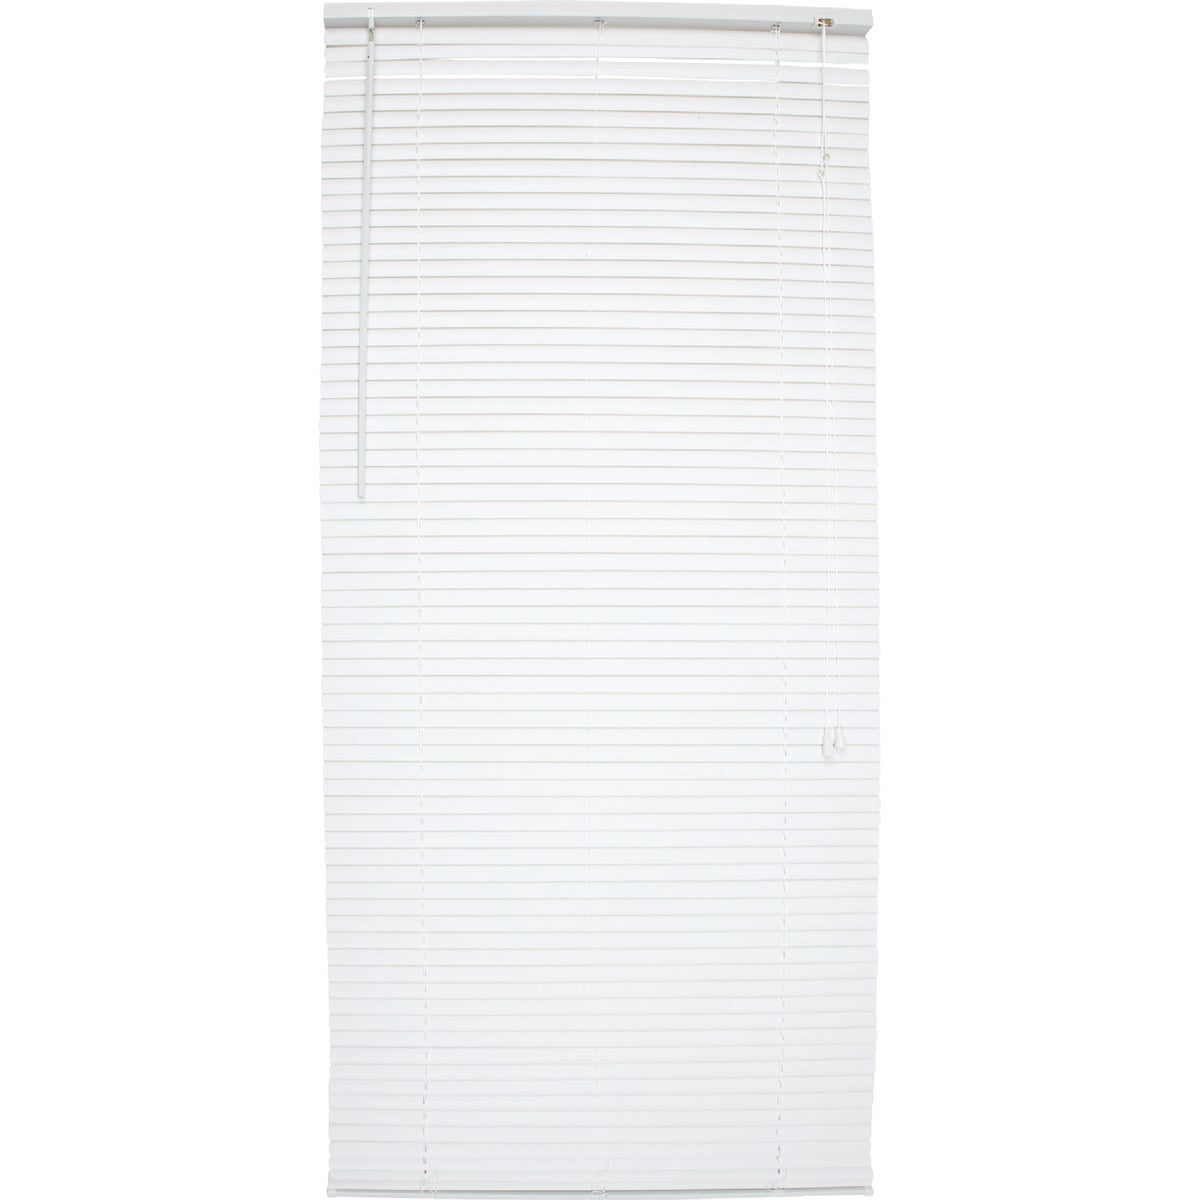 41X64 WHITE MINI BLIND - 615390 by Lotus Wind Incom